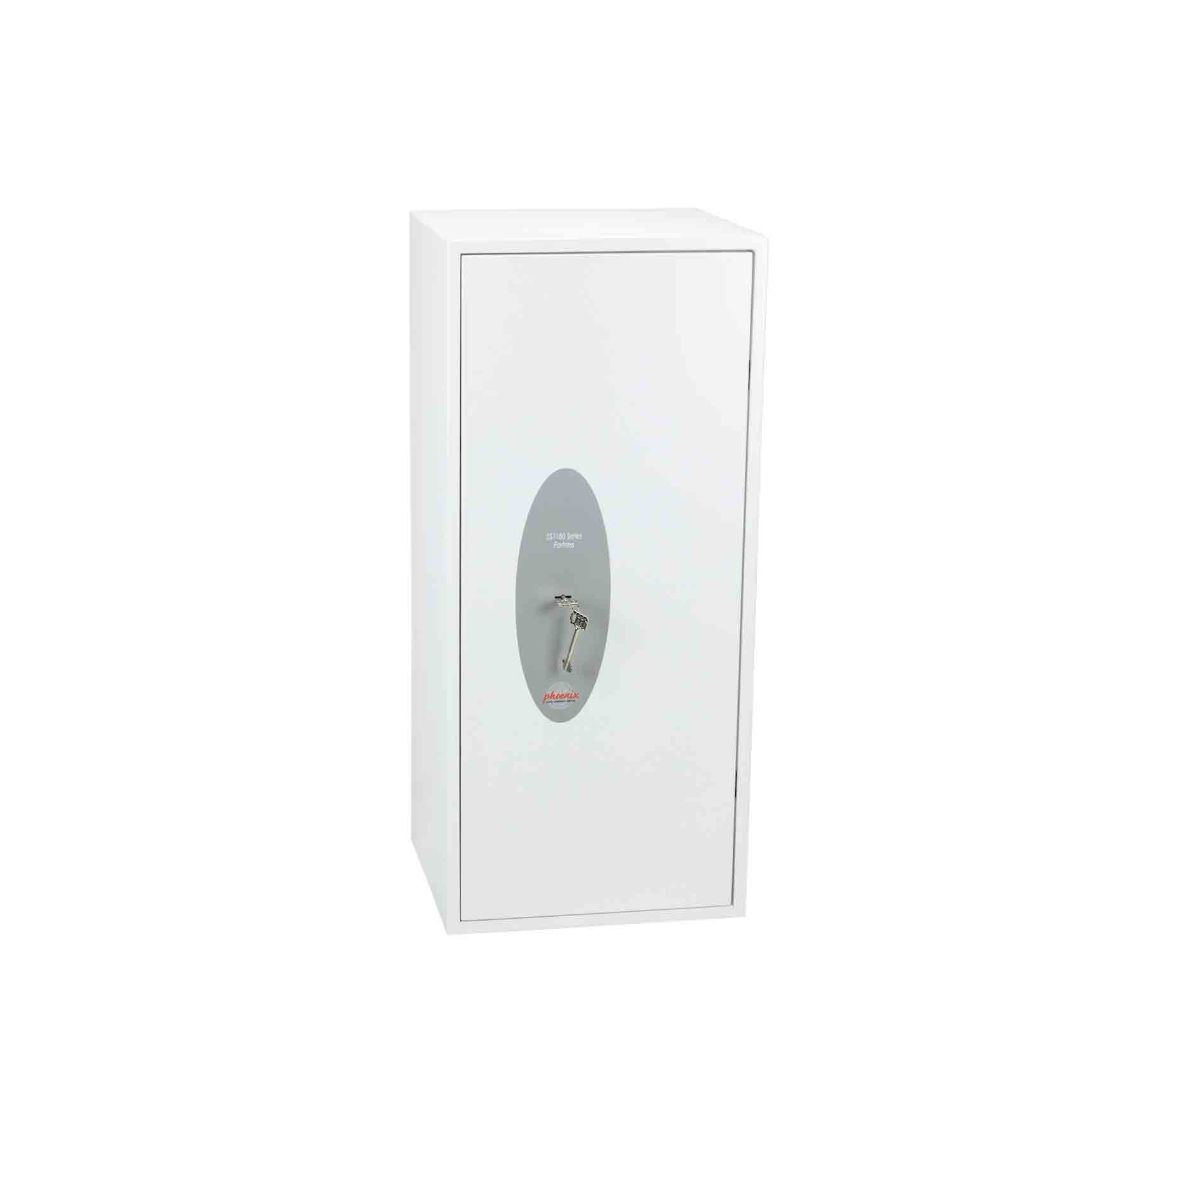 Phoenix Fortress S2 Security Safe with Key Lock Size 5